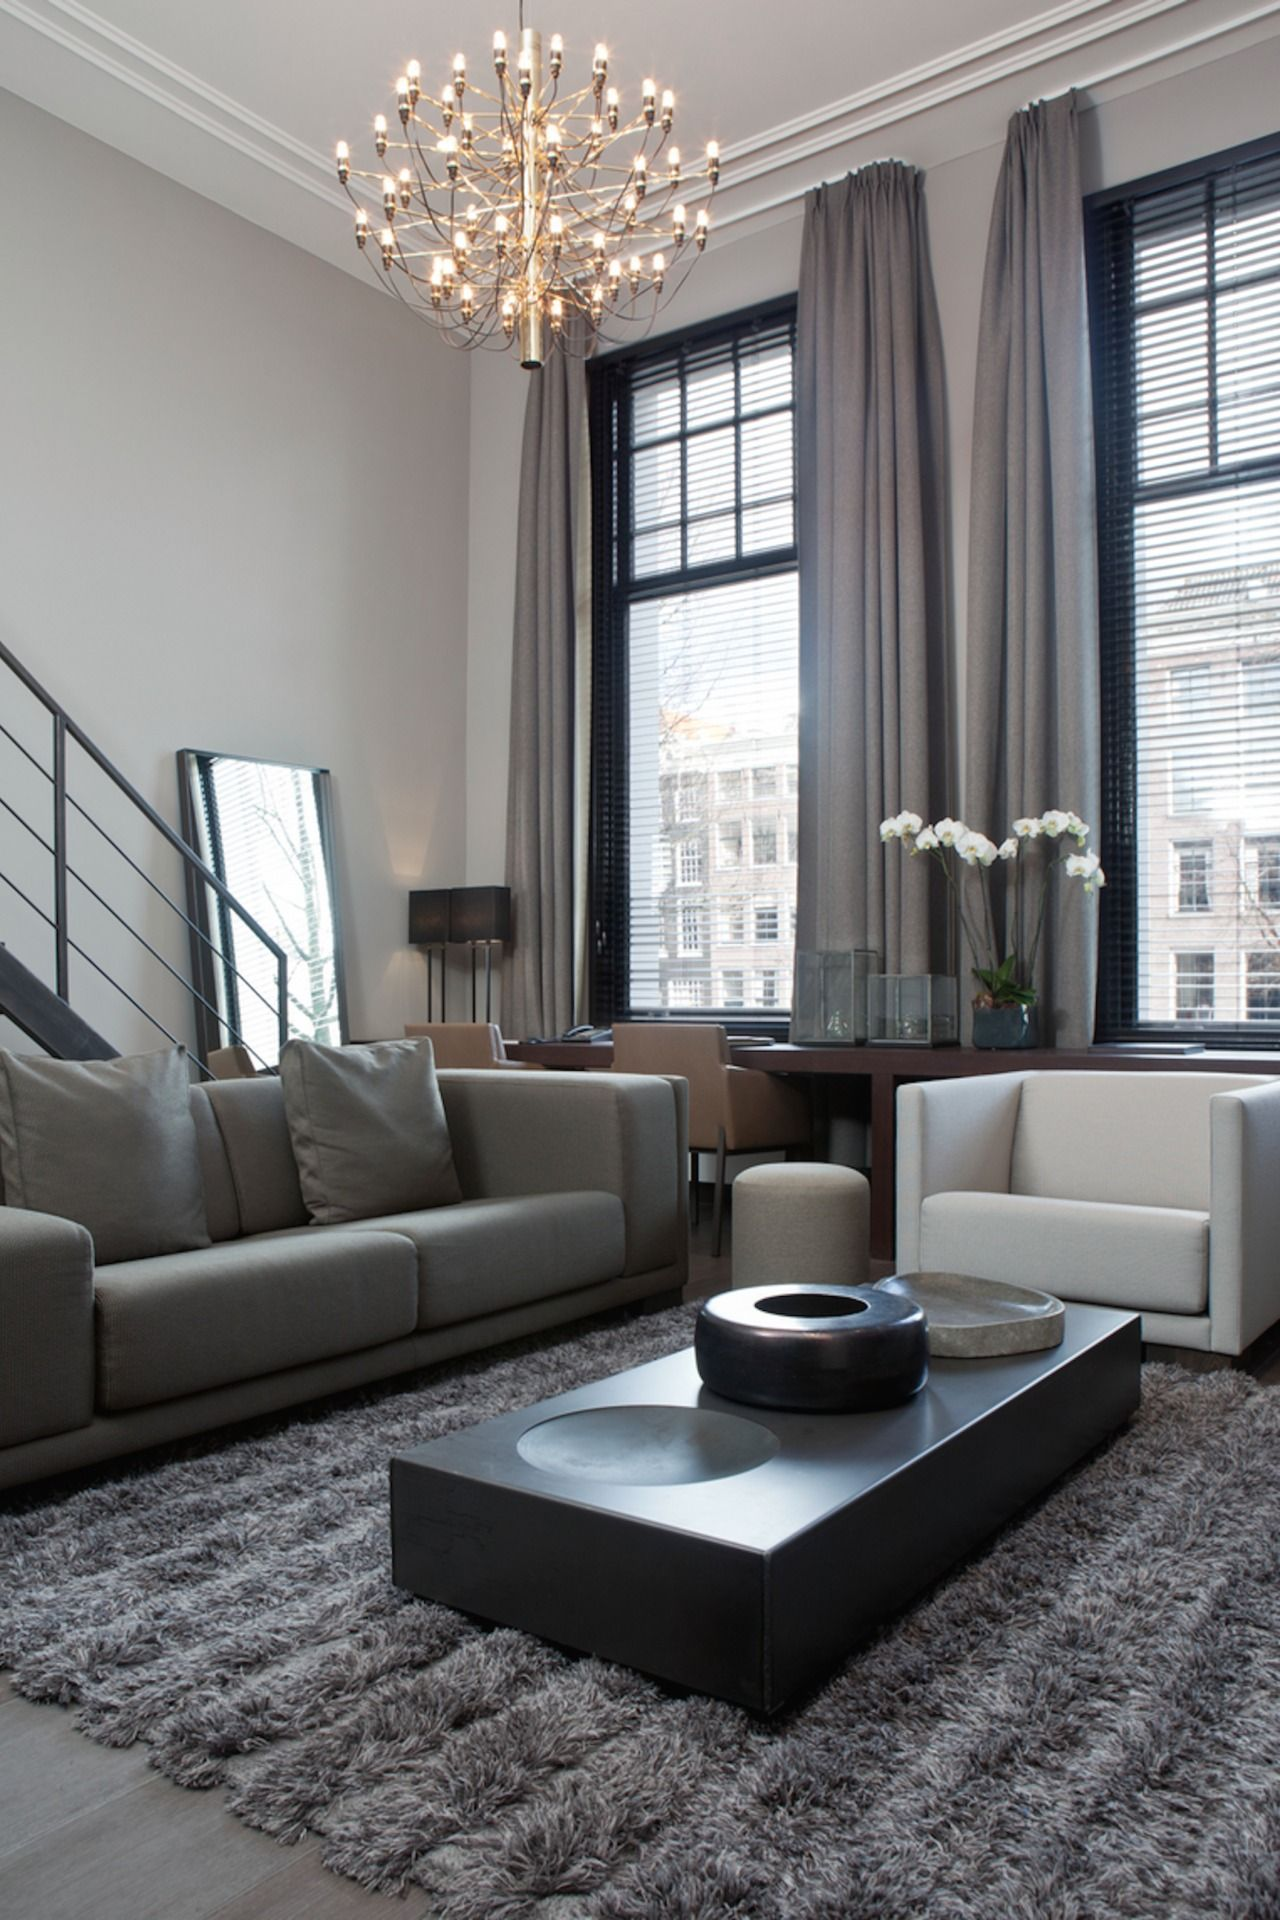 what's gray, tall, and chic all over? this living room! not only